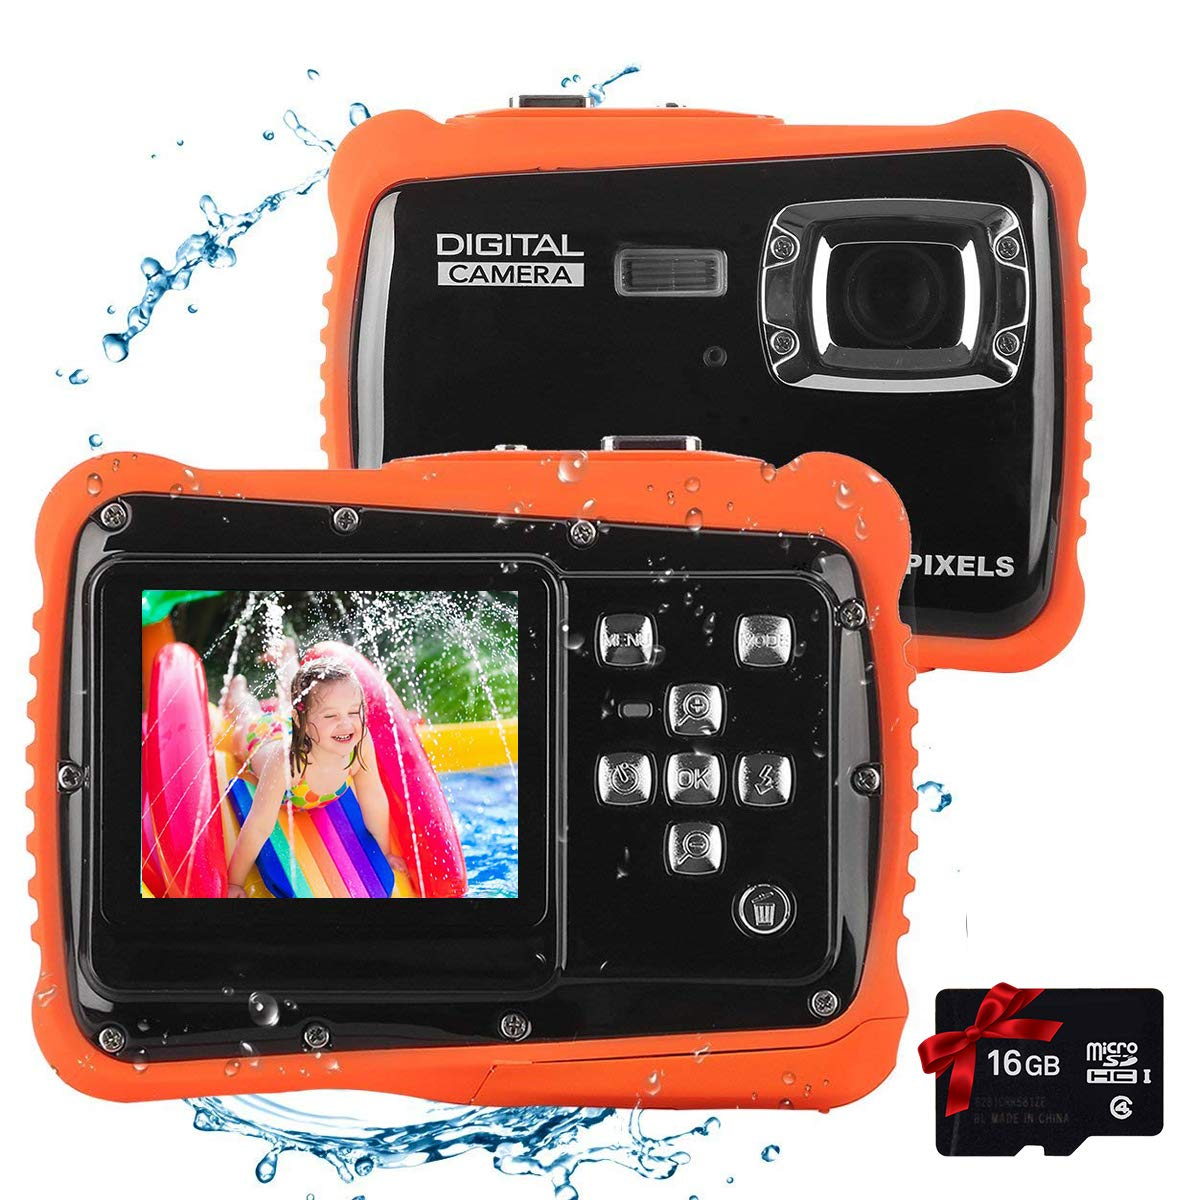 Kids Waterproof Camera Digital Camera for 4-10 Years Old Children, 12MP HD Underwater Action Camera Camcorder with 8X Digital Zoom, 2.0 Inch LCD Display, 16G Micro SD Card - Easy to Use (Orange)